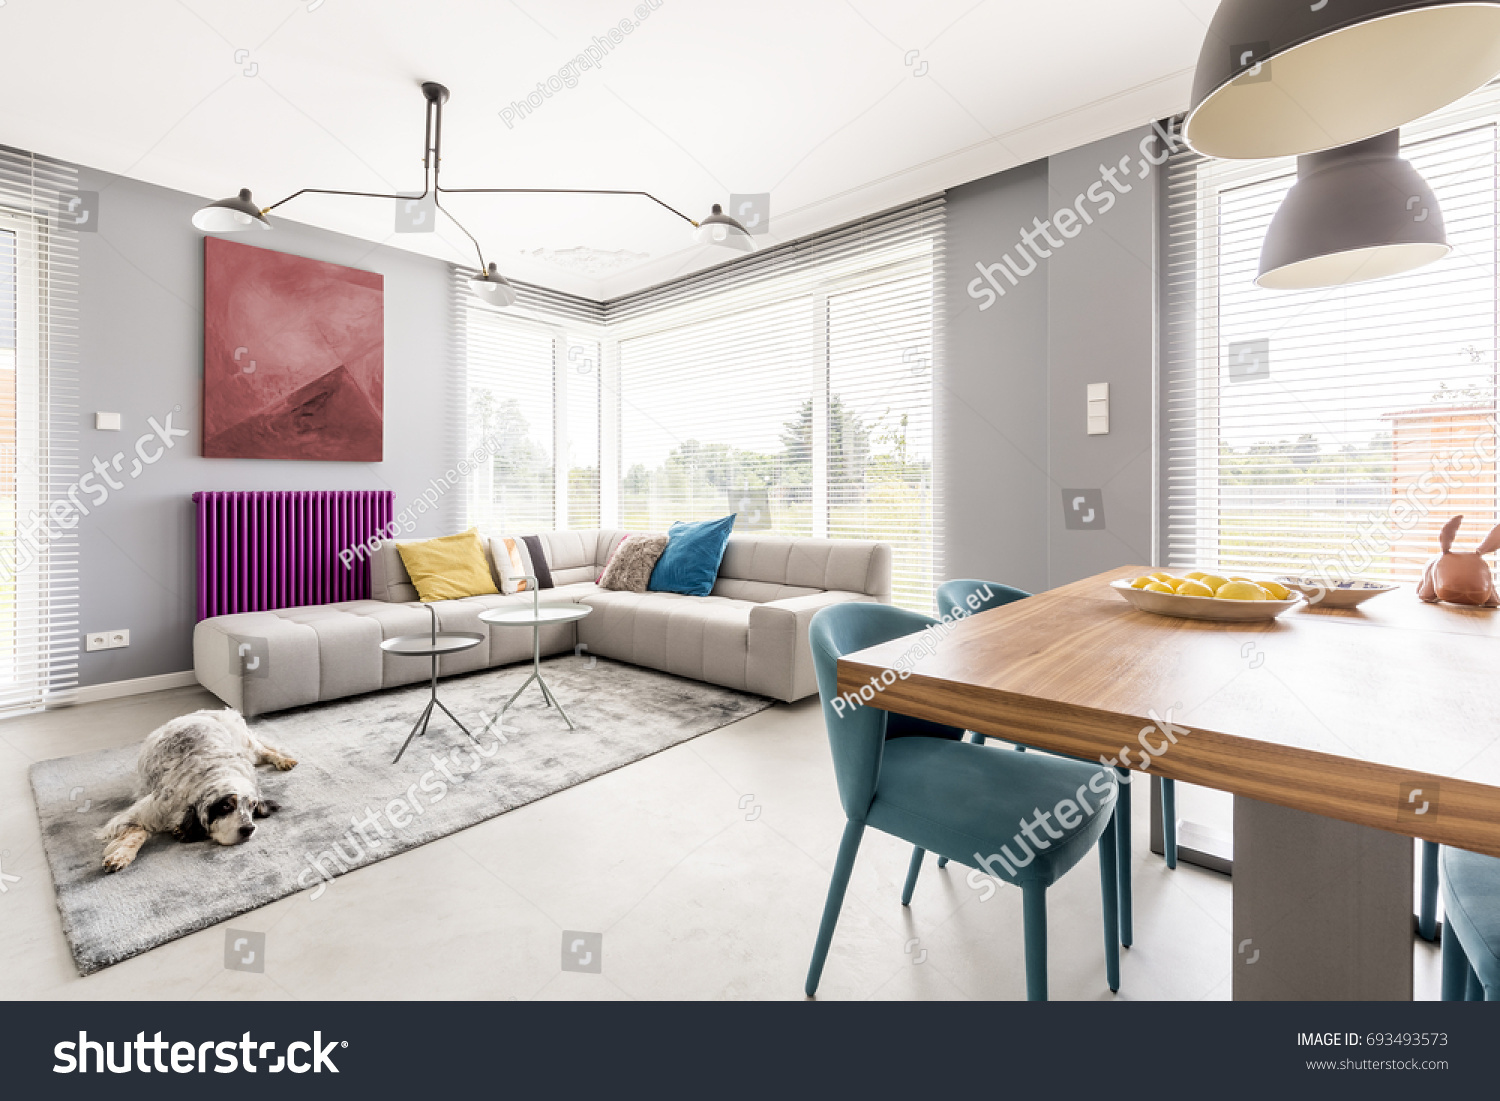 Contemporary Living Room For Family With Gray Walls Beige Corner Sofa Big Windows